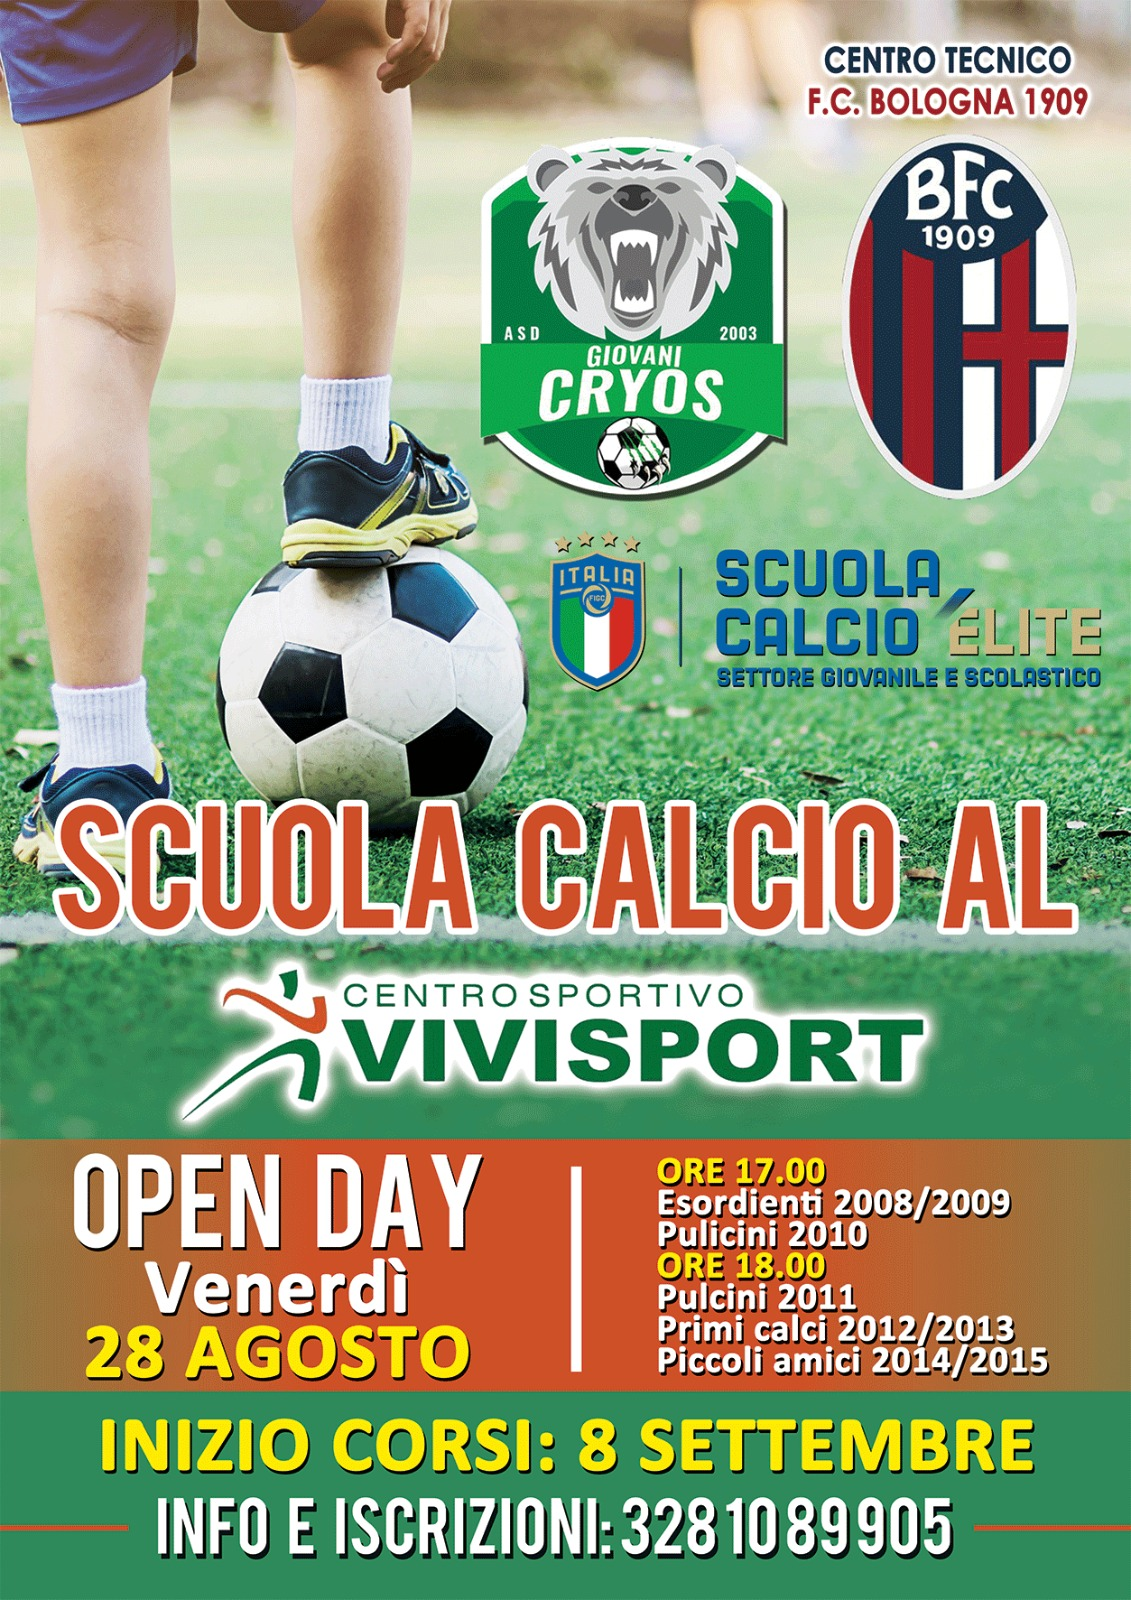 Evento Open Day al VIvisport